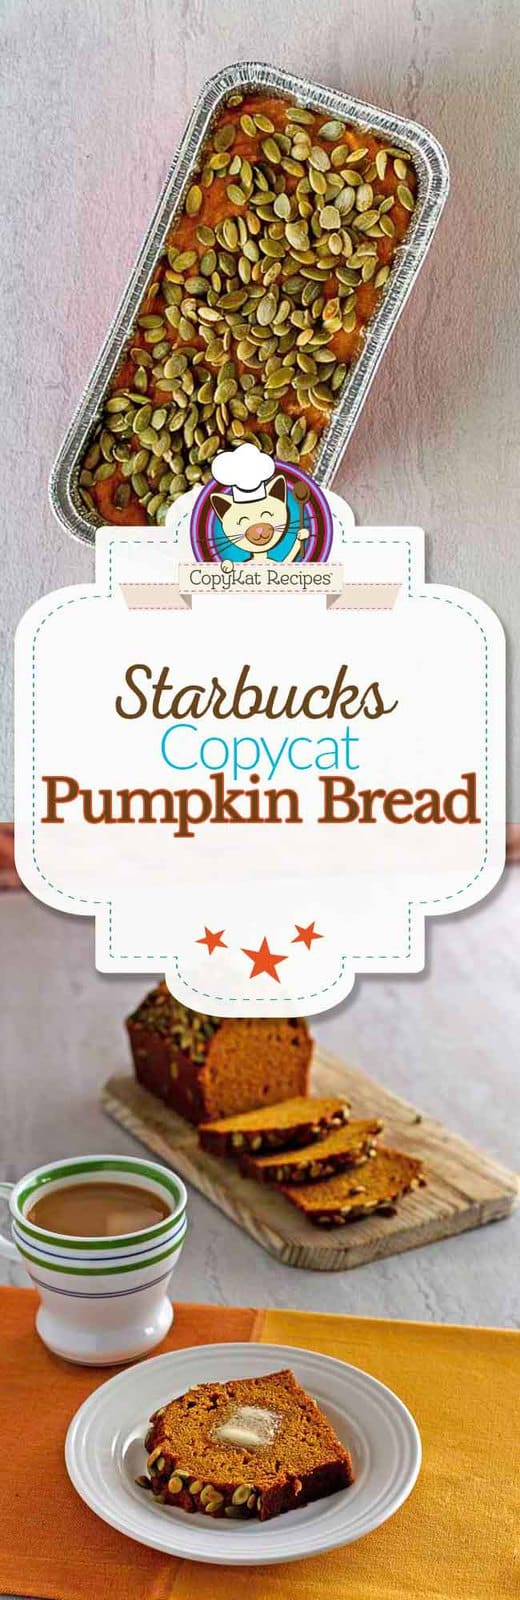 Make your own loaf of Starbucks Pumpkin bread at home, it tastes jut like it does in the store.